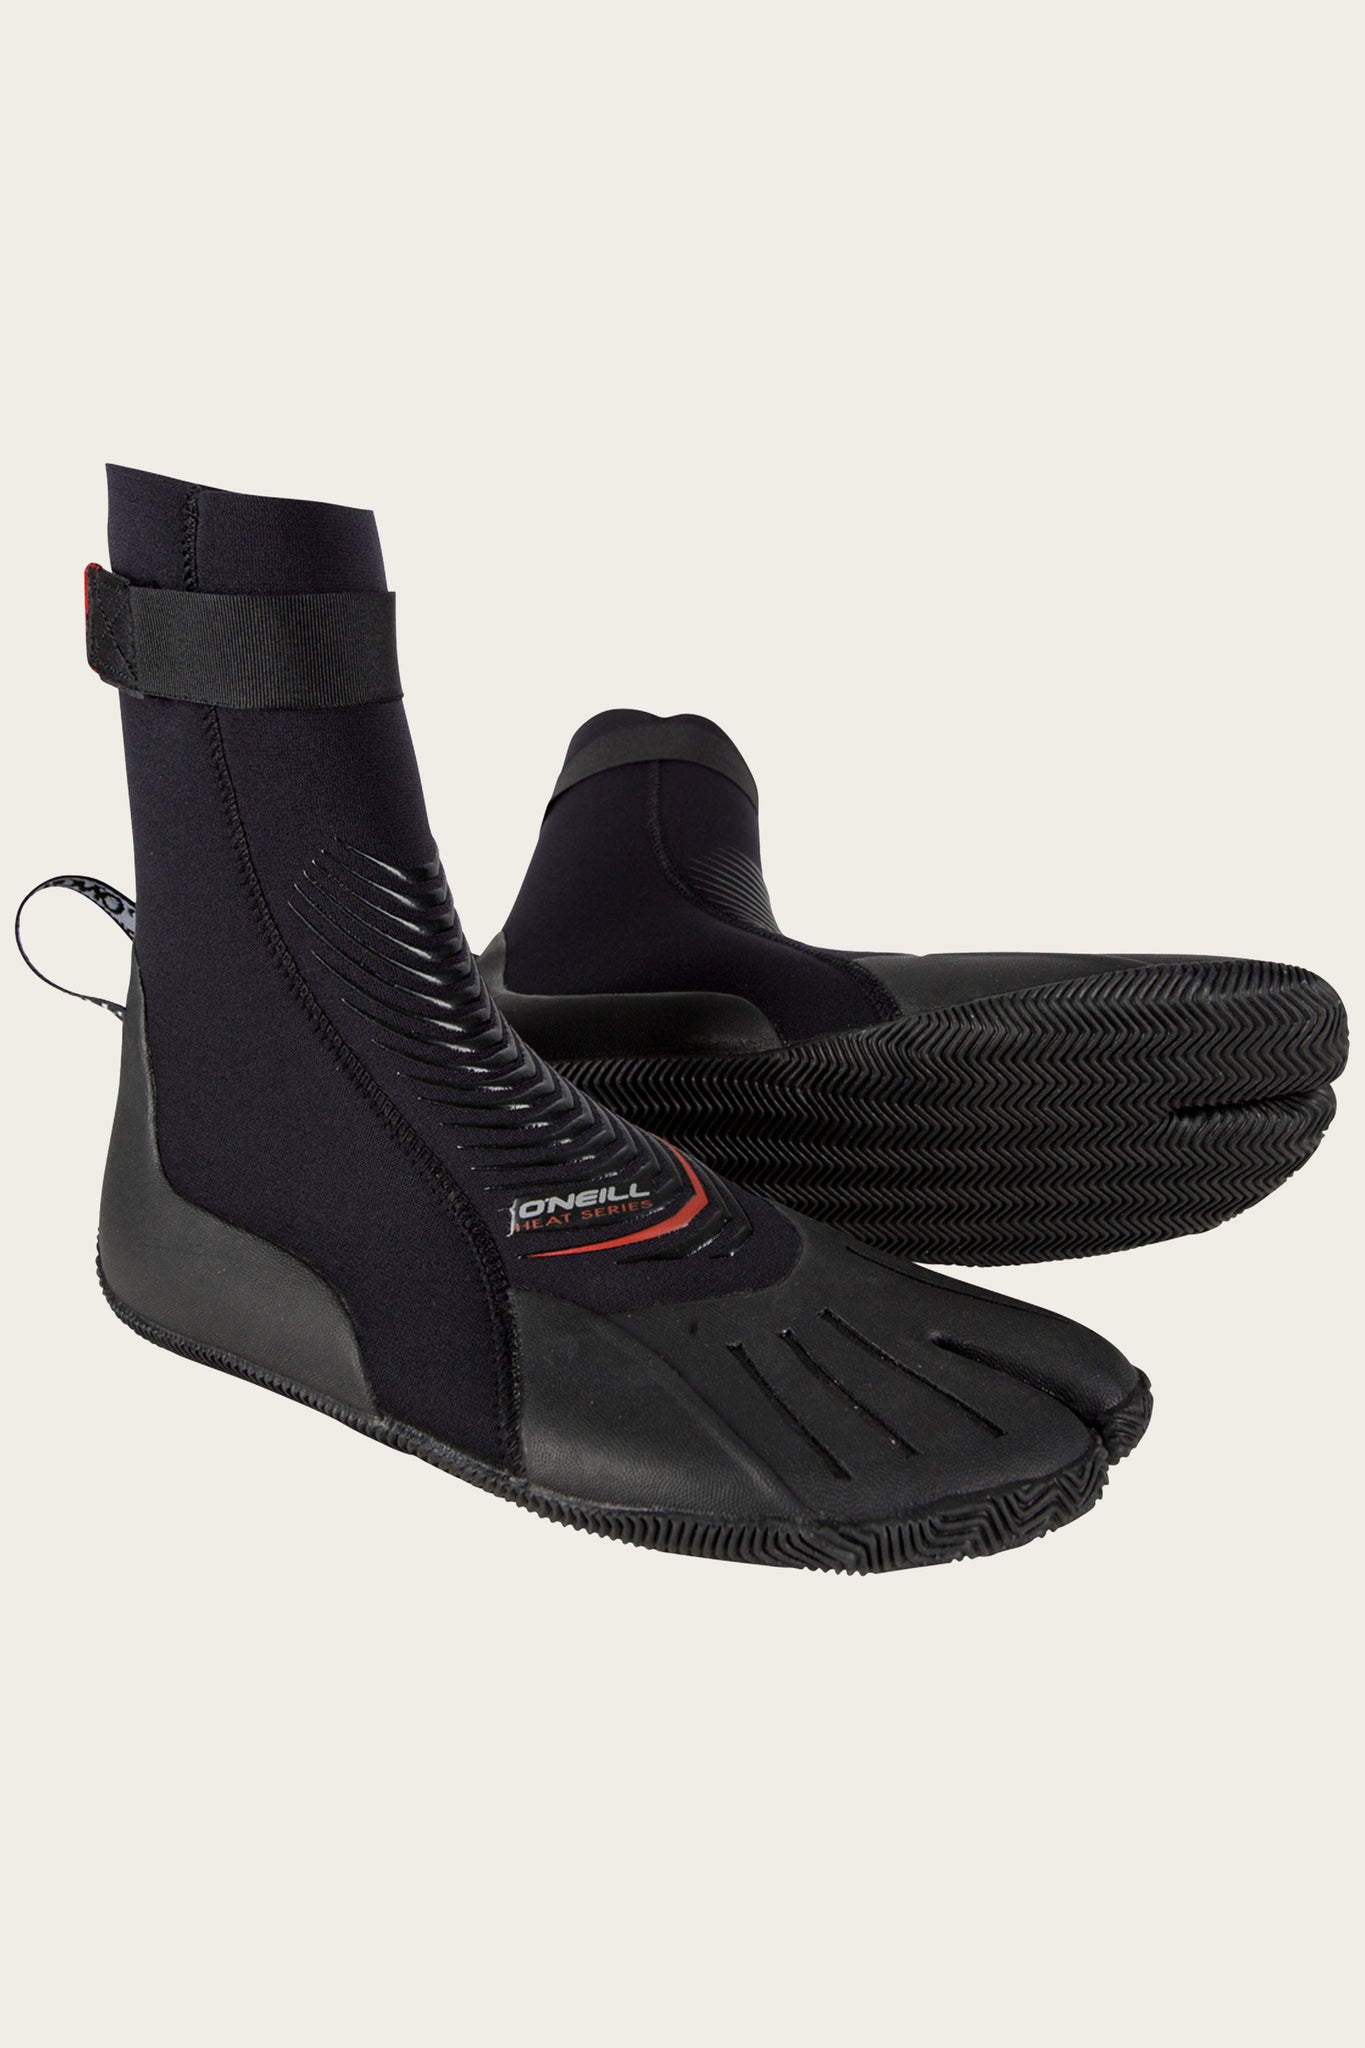 Heat St 3Mm Boot - Black | O'Neill